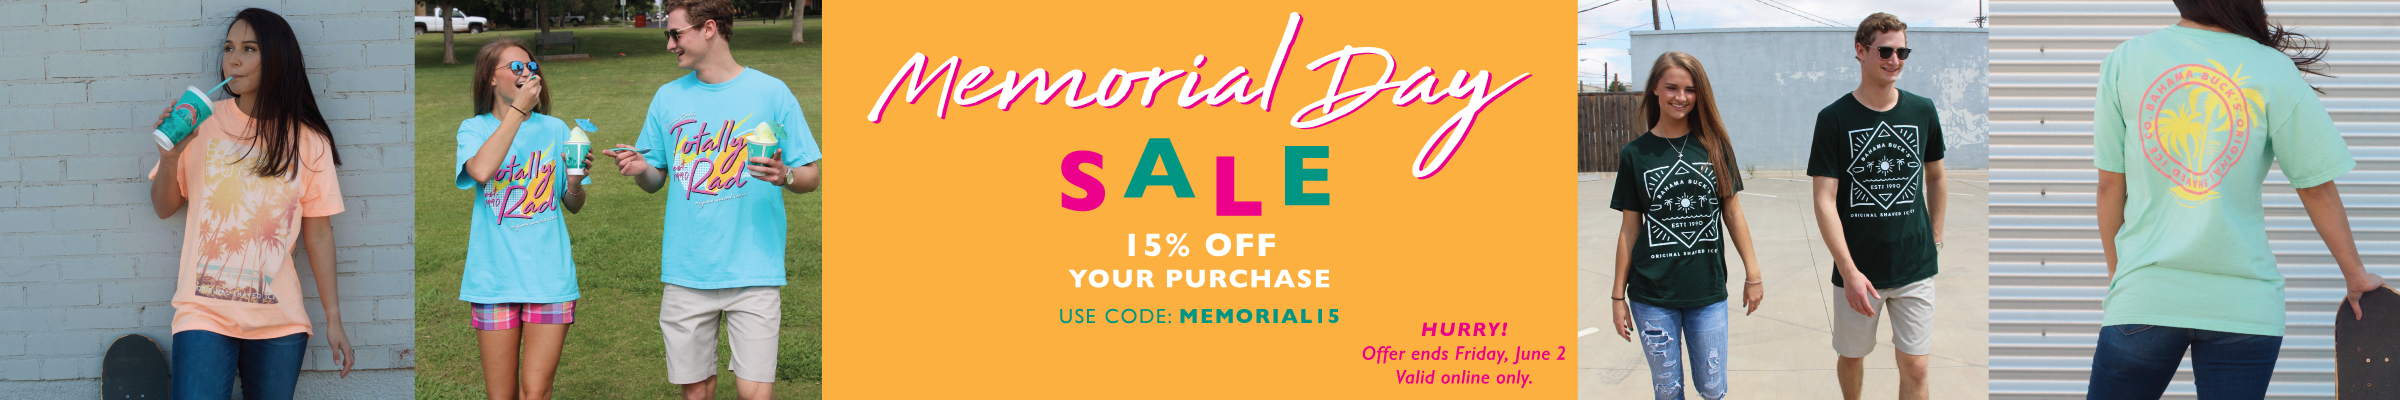 Use code MEMORIAL15 for 15% off your order!